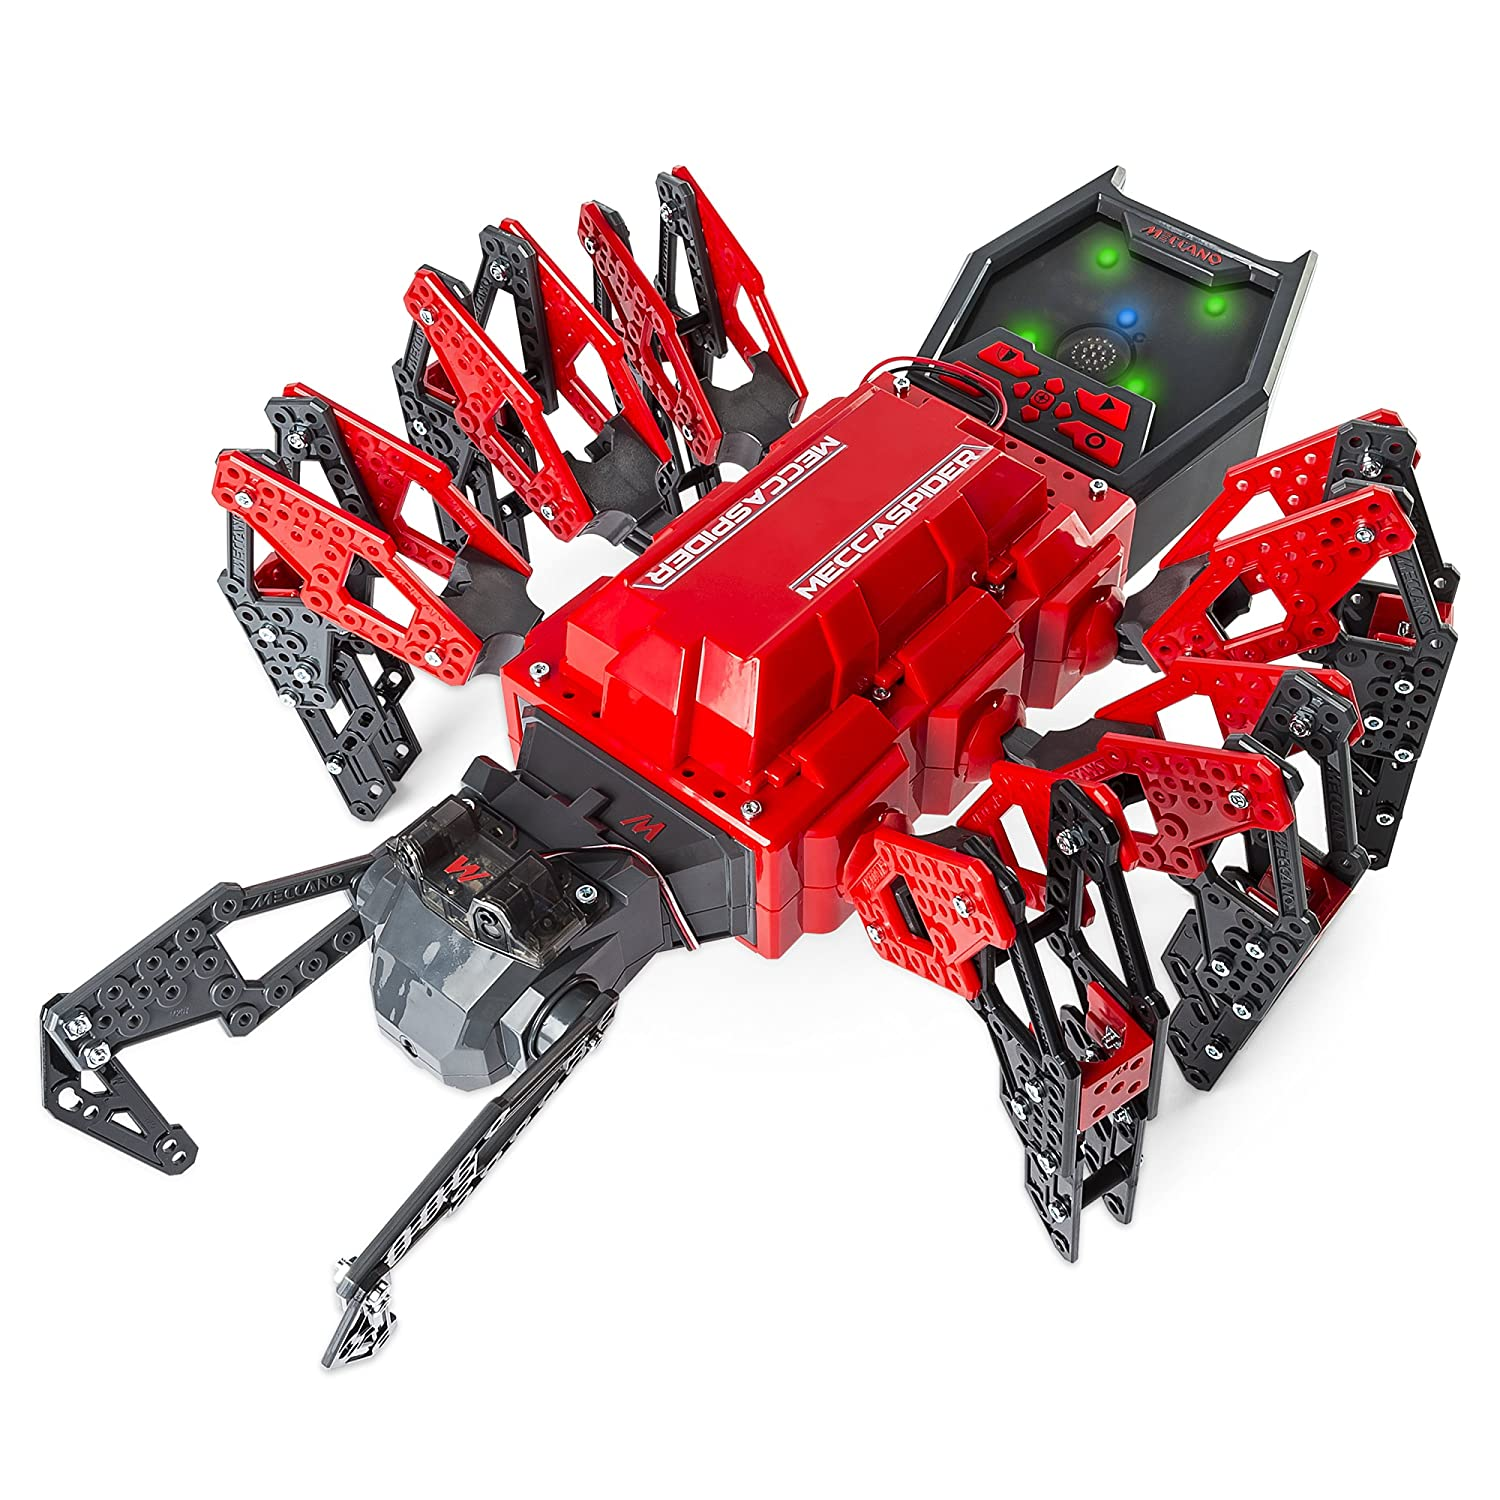 Amazon Meccano Erector – MeccaSpider Robot Kit For Kids to